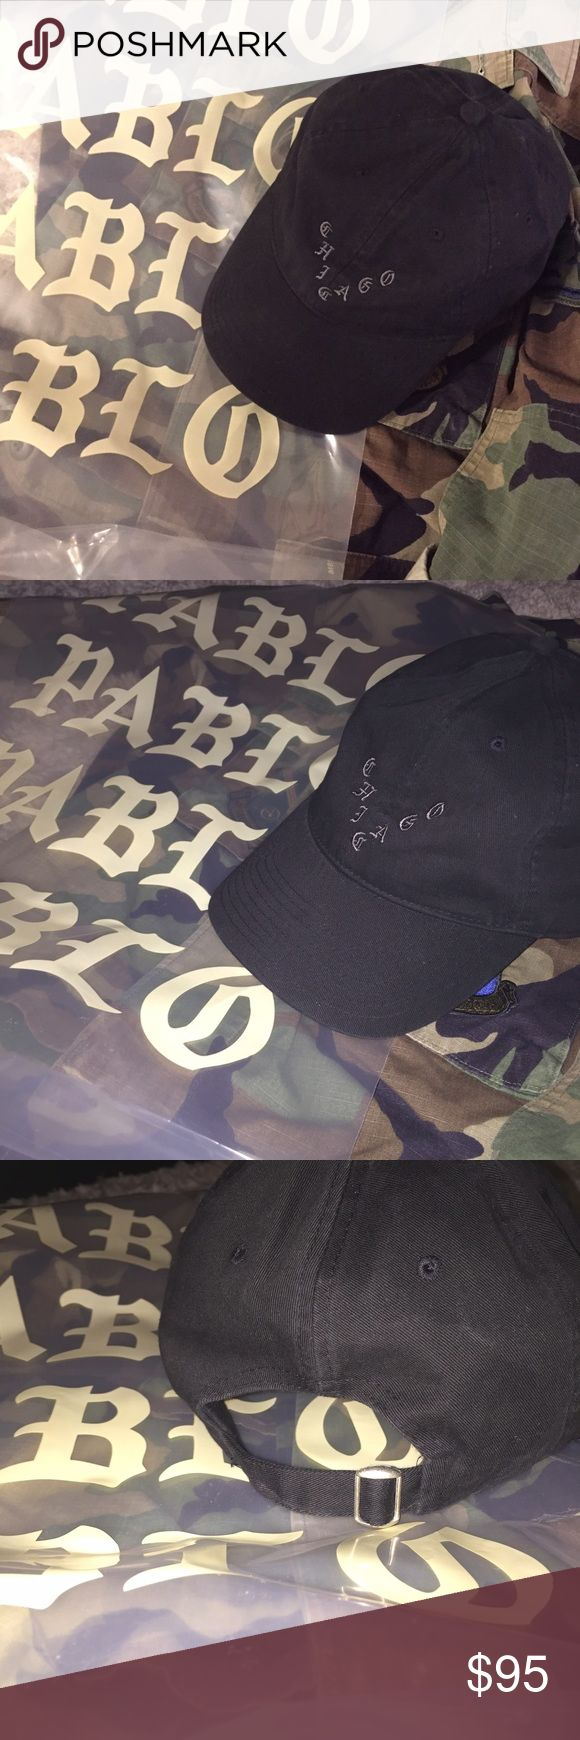 """KANYE WEST PABLO - Pop Up Shop - CHICAGO Dad Hat New! PABLO MERCH! AKA Kanye West's I FEEL LIKE PABLO tour merchandise. """"Chicago"""". Authentic. UNISEX. Never worn. Arrived with No Tags. It's more of a vintage black color with gray stitching. Adjustable back. Plastic bag not included. Dad Hat style. Pablo Merch Accessories Hats"""